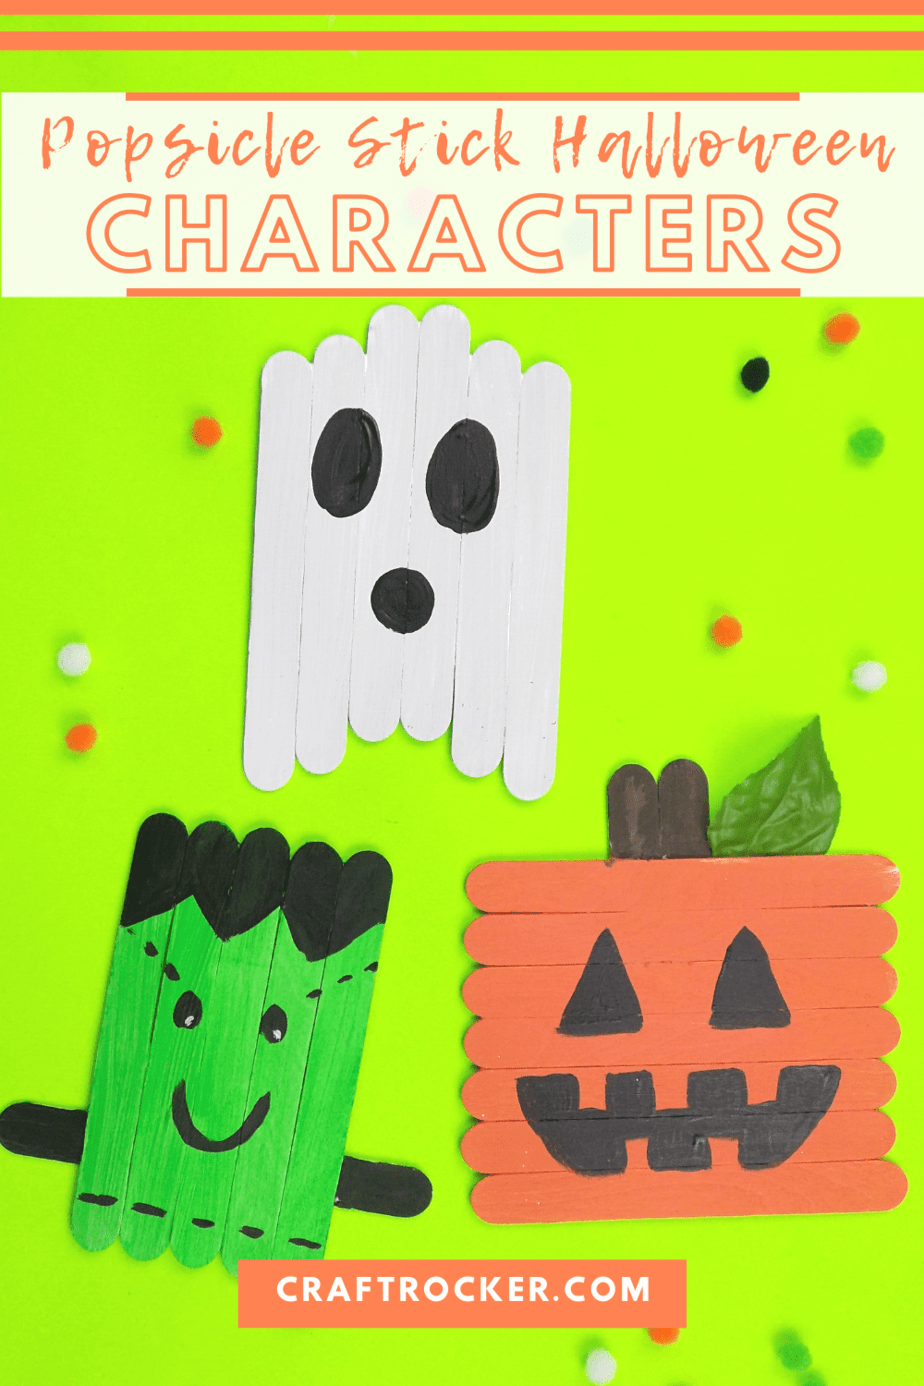 Ghost Craft Next to Frankie and Jack-o-Lantern Craft with text overlay - Popsicle Stick Halloween Characters - Craft Rocker